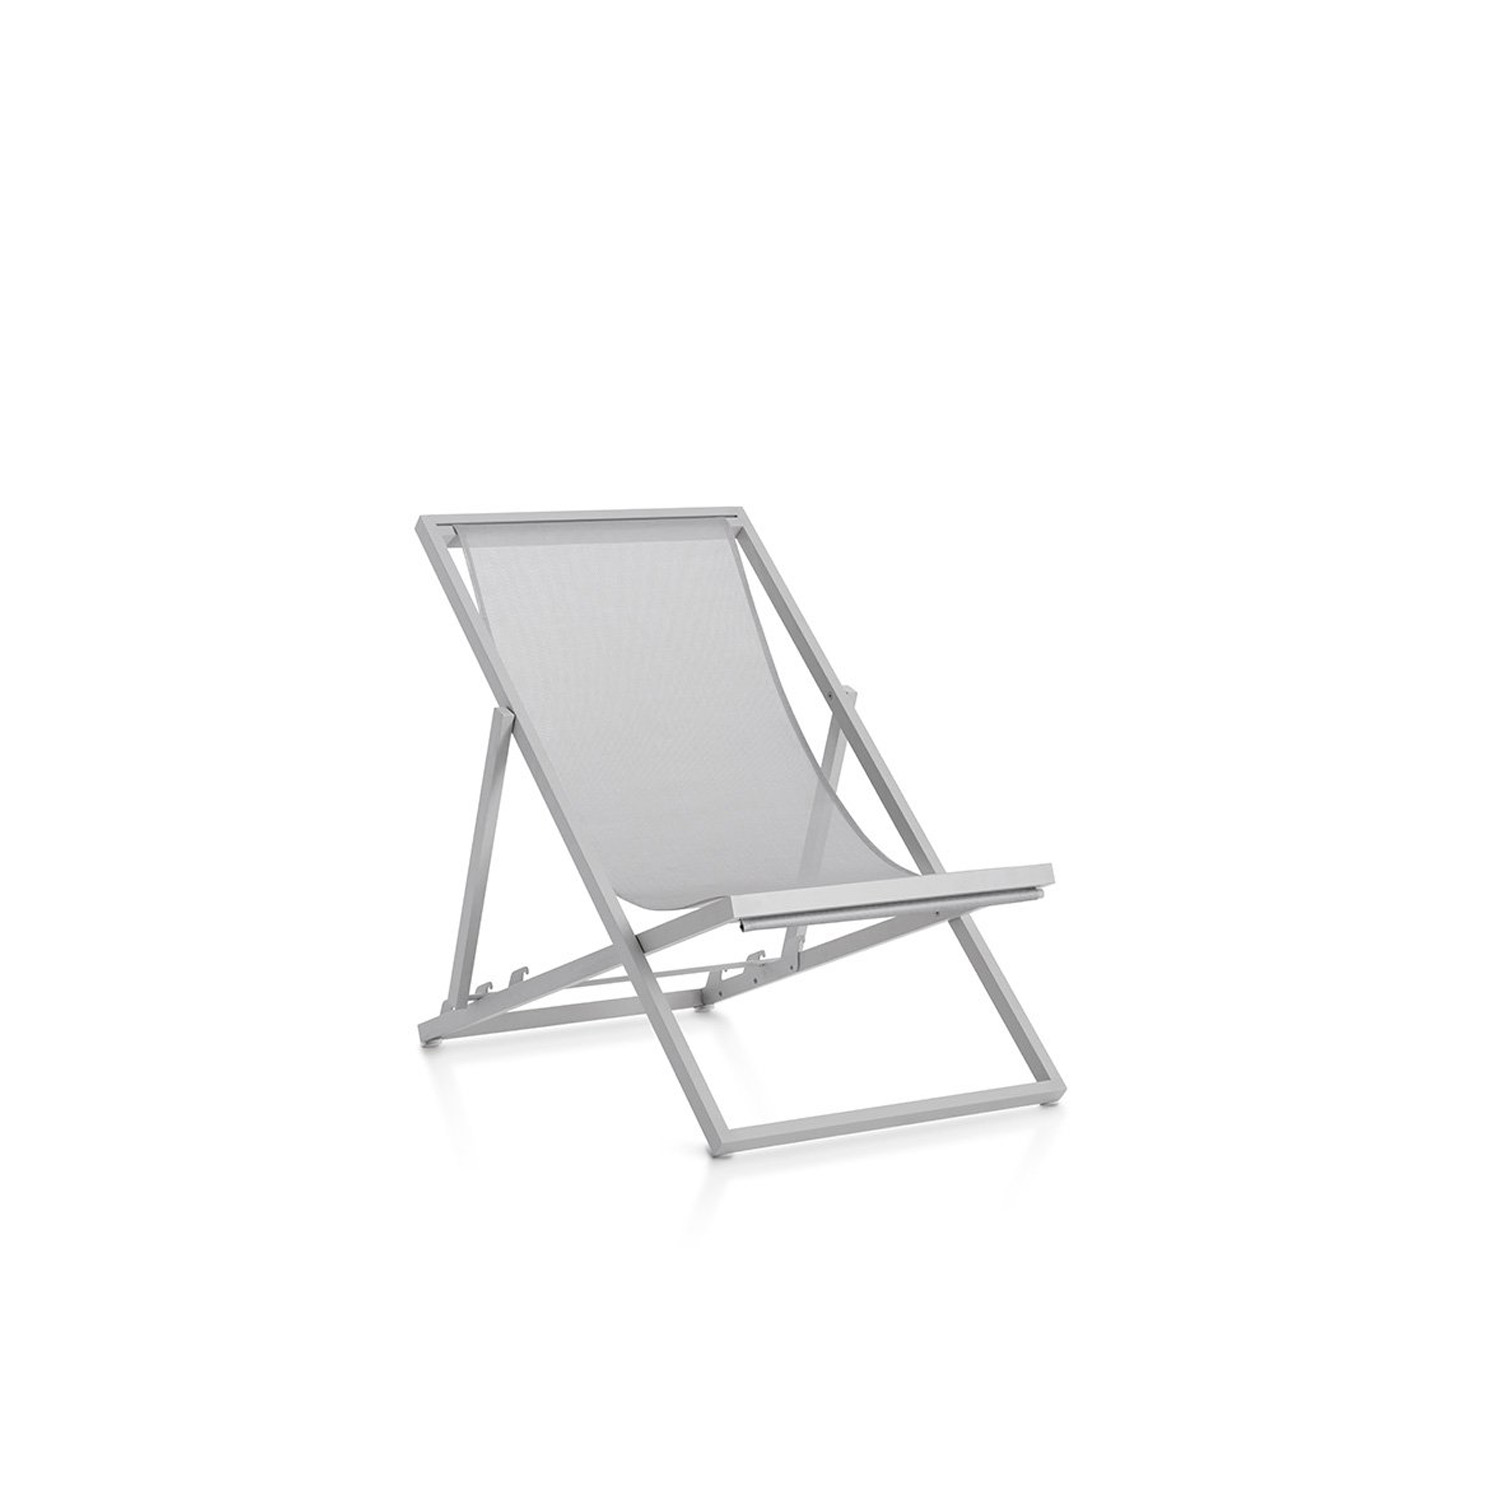 Picnic Deckchair - <p>Picnic is an improved version of the traditional folding garden deckchair. With a lighter and more hard-wearing design making it easier to carry to the beach or the park, Picnic can also be left outside permanently in all weather conditions. It's the ideal companion for enjoying a day out in the open air, plus it can be used at home both indoors and outdoors as it's foldable and very easy to carry around.</p>